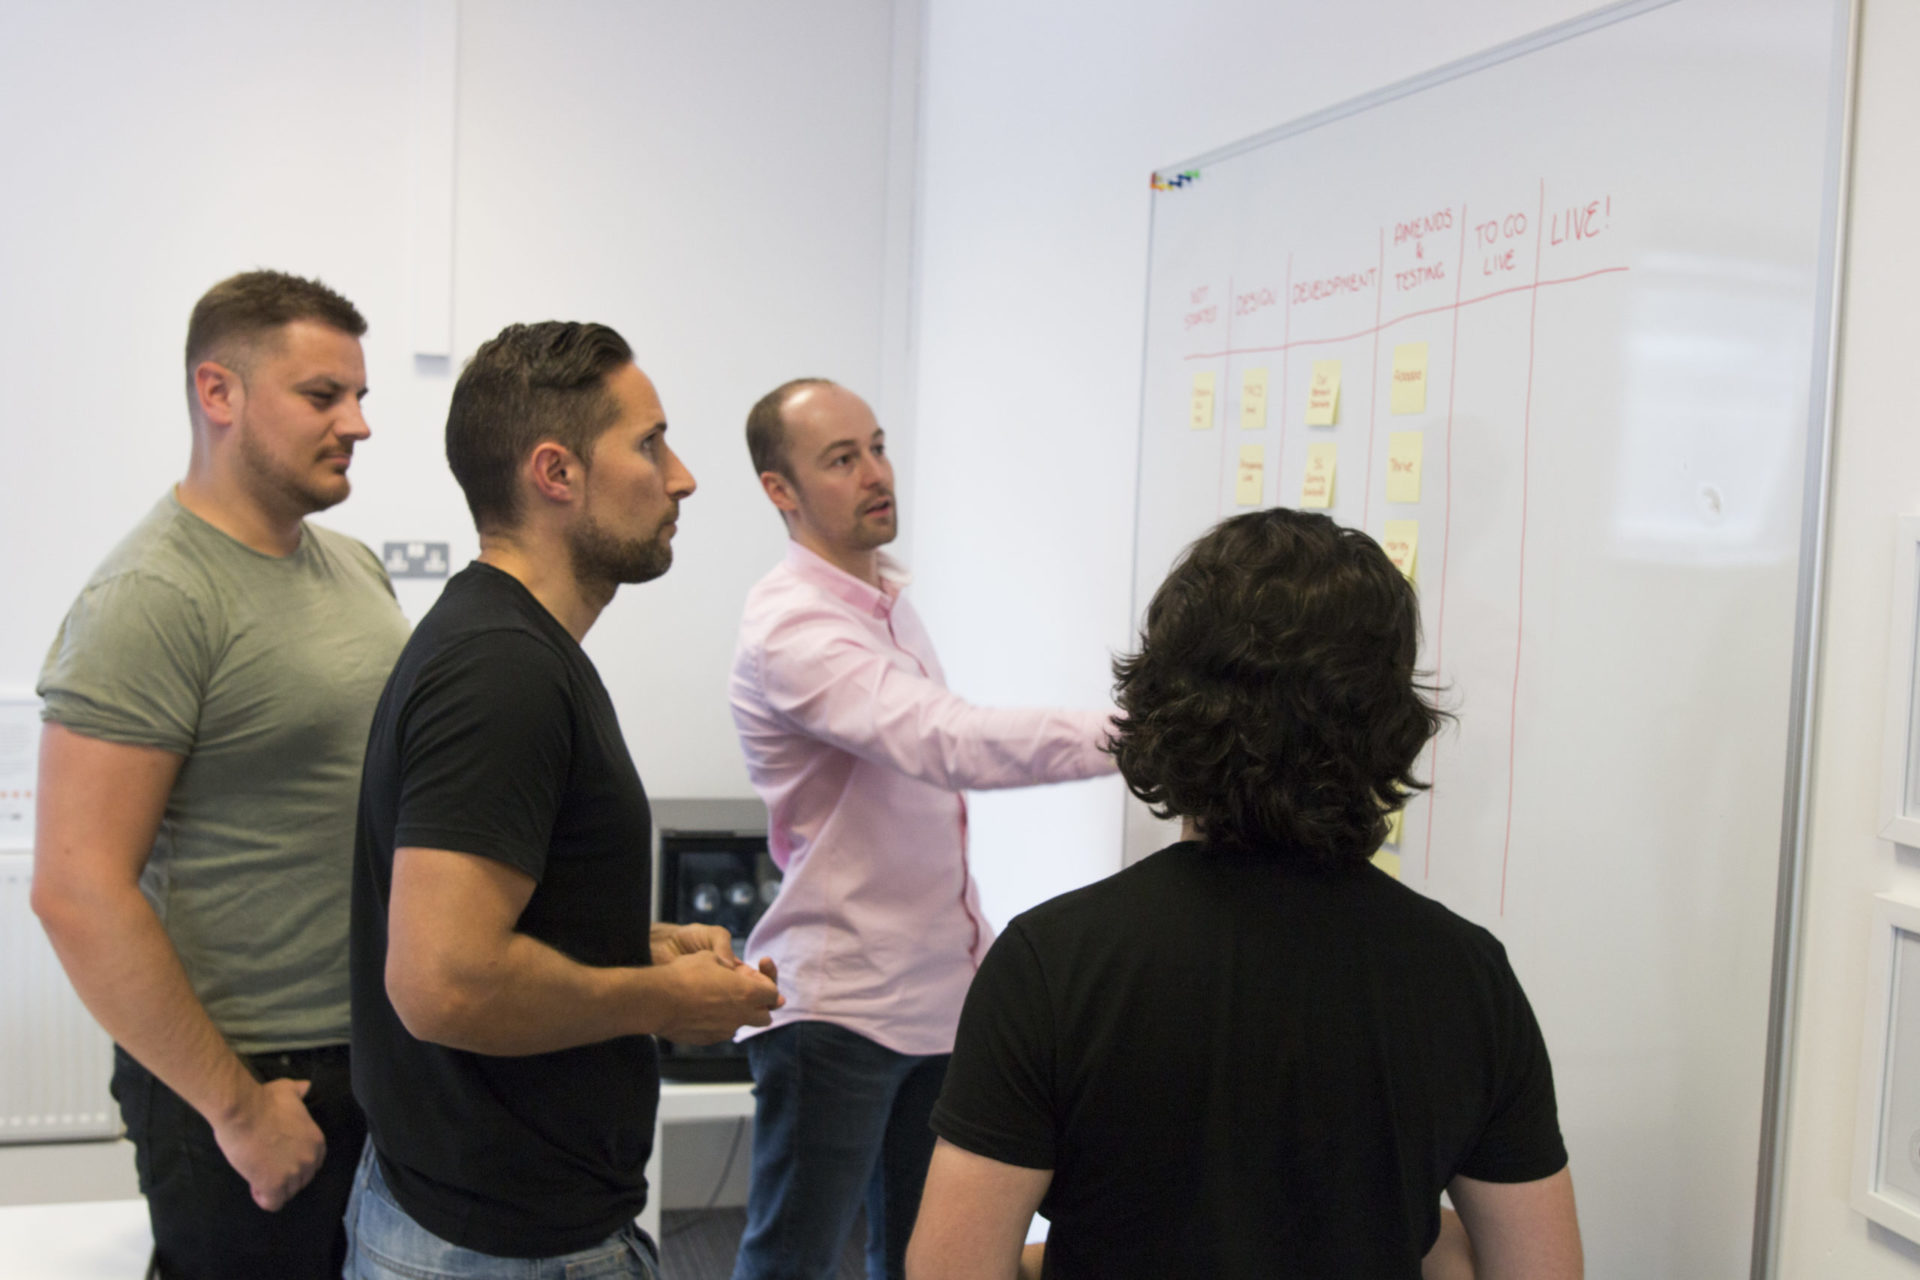 The Pixel Kicks team working together planning a new project